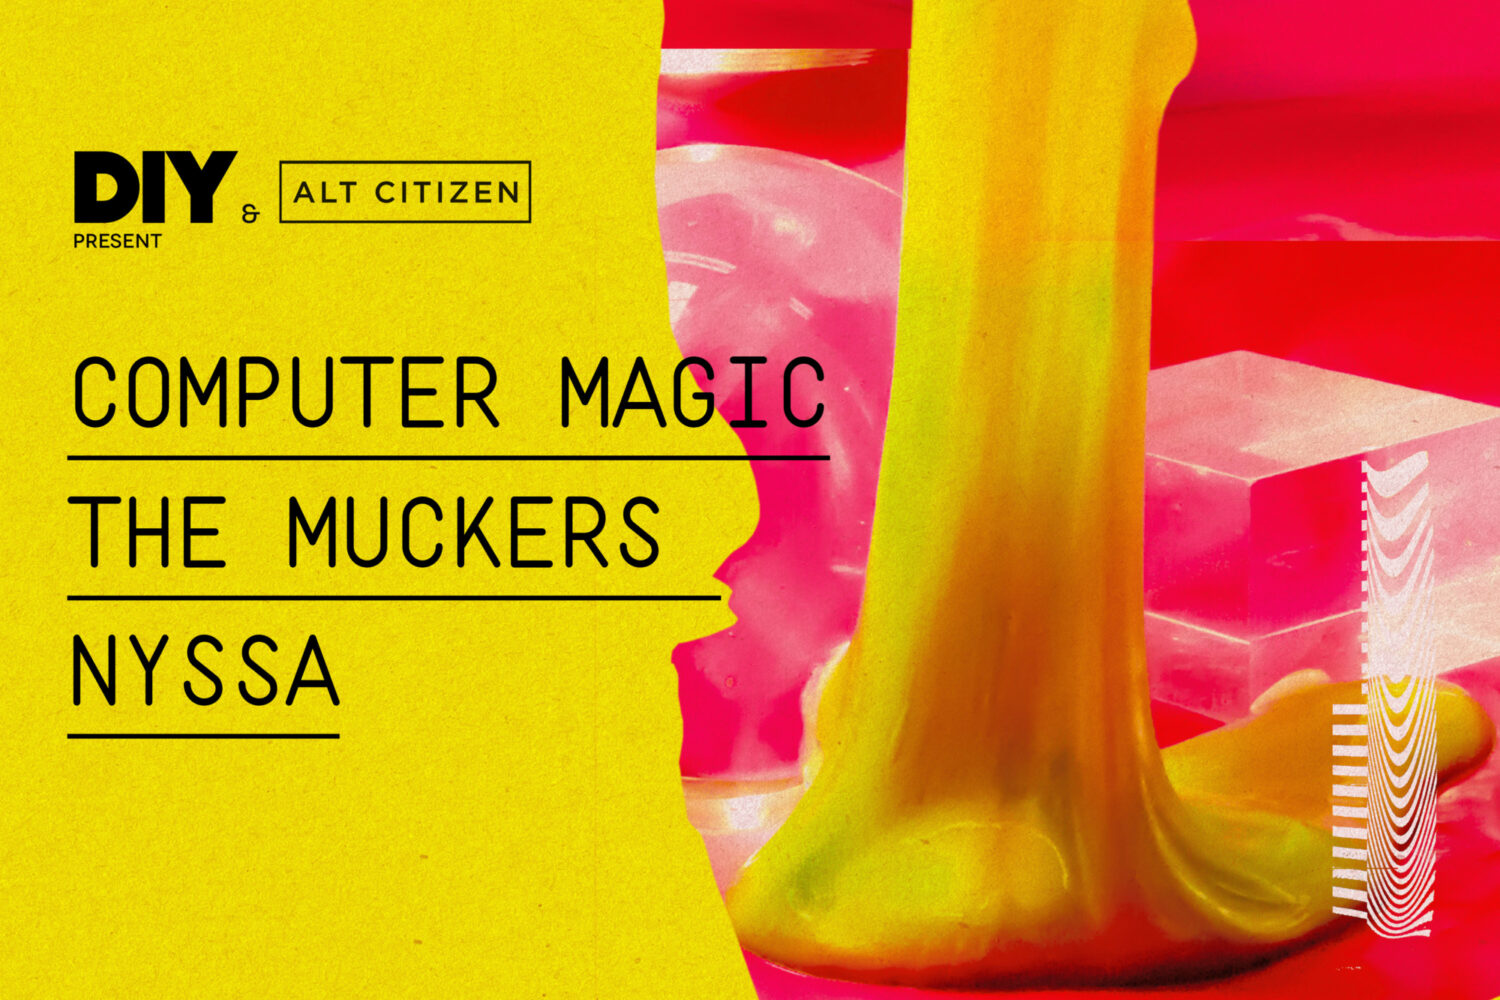 DIY are teaming up with Alt Citizen to launch a new series of gigs in New York!